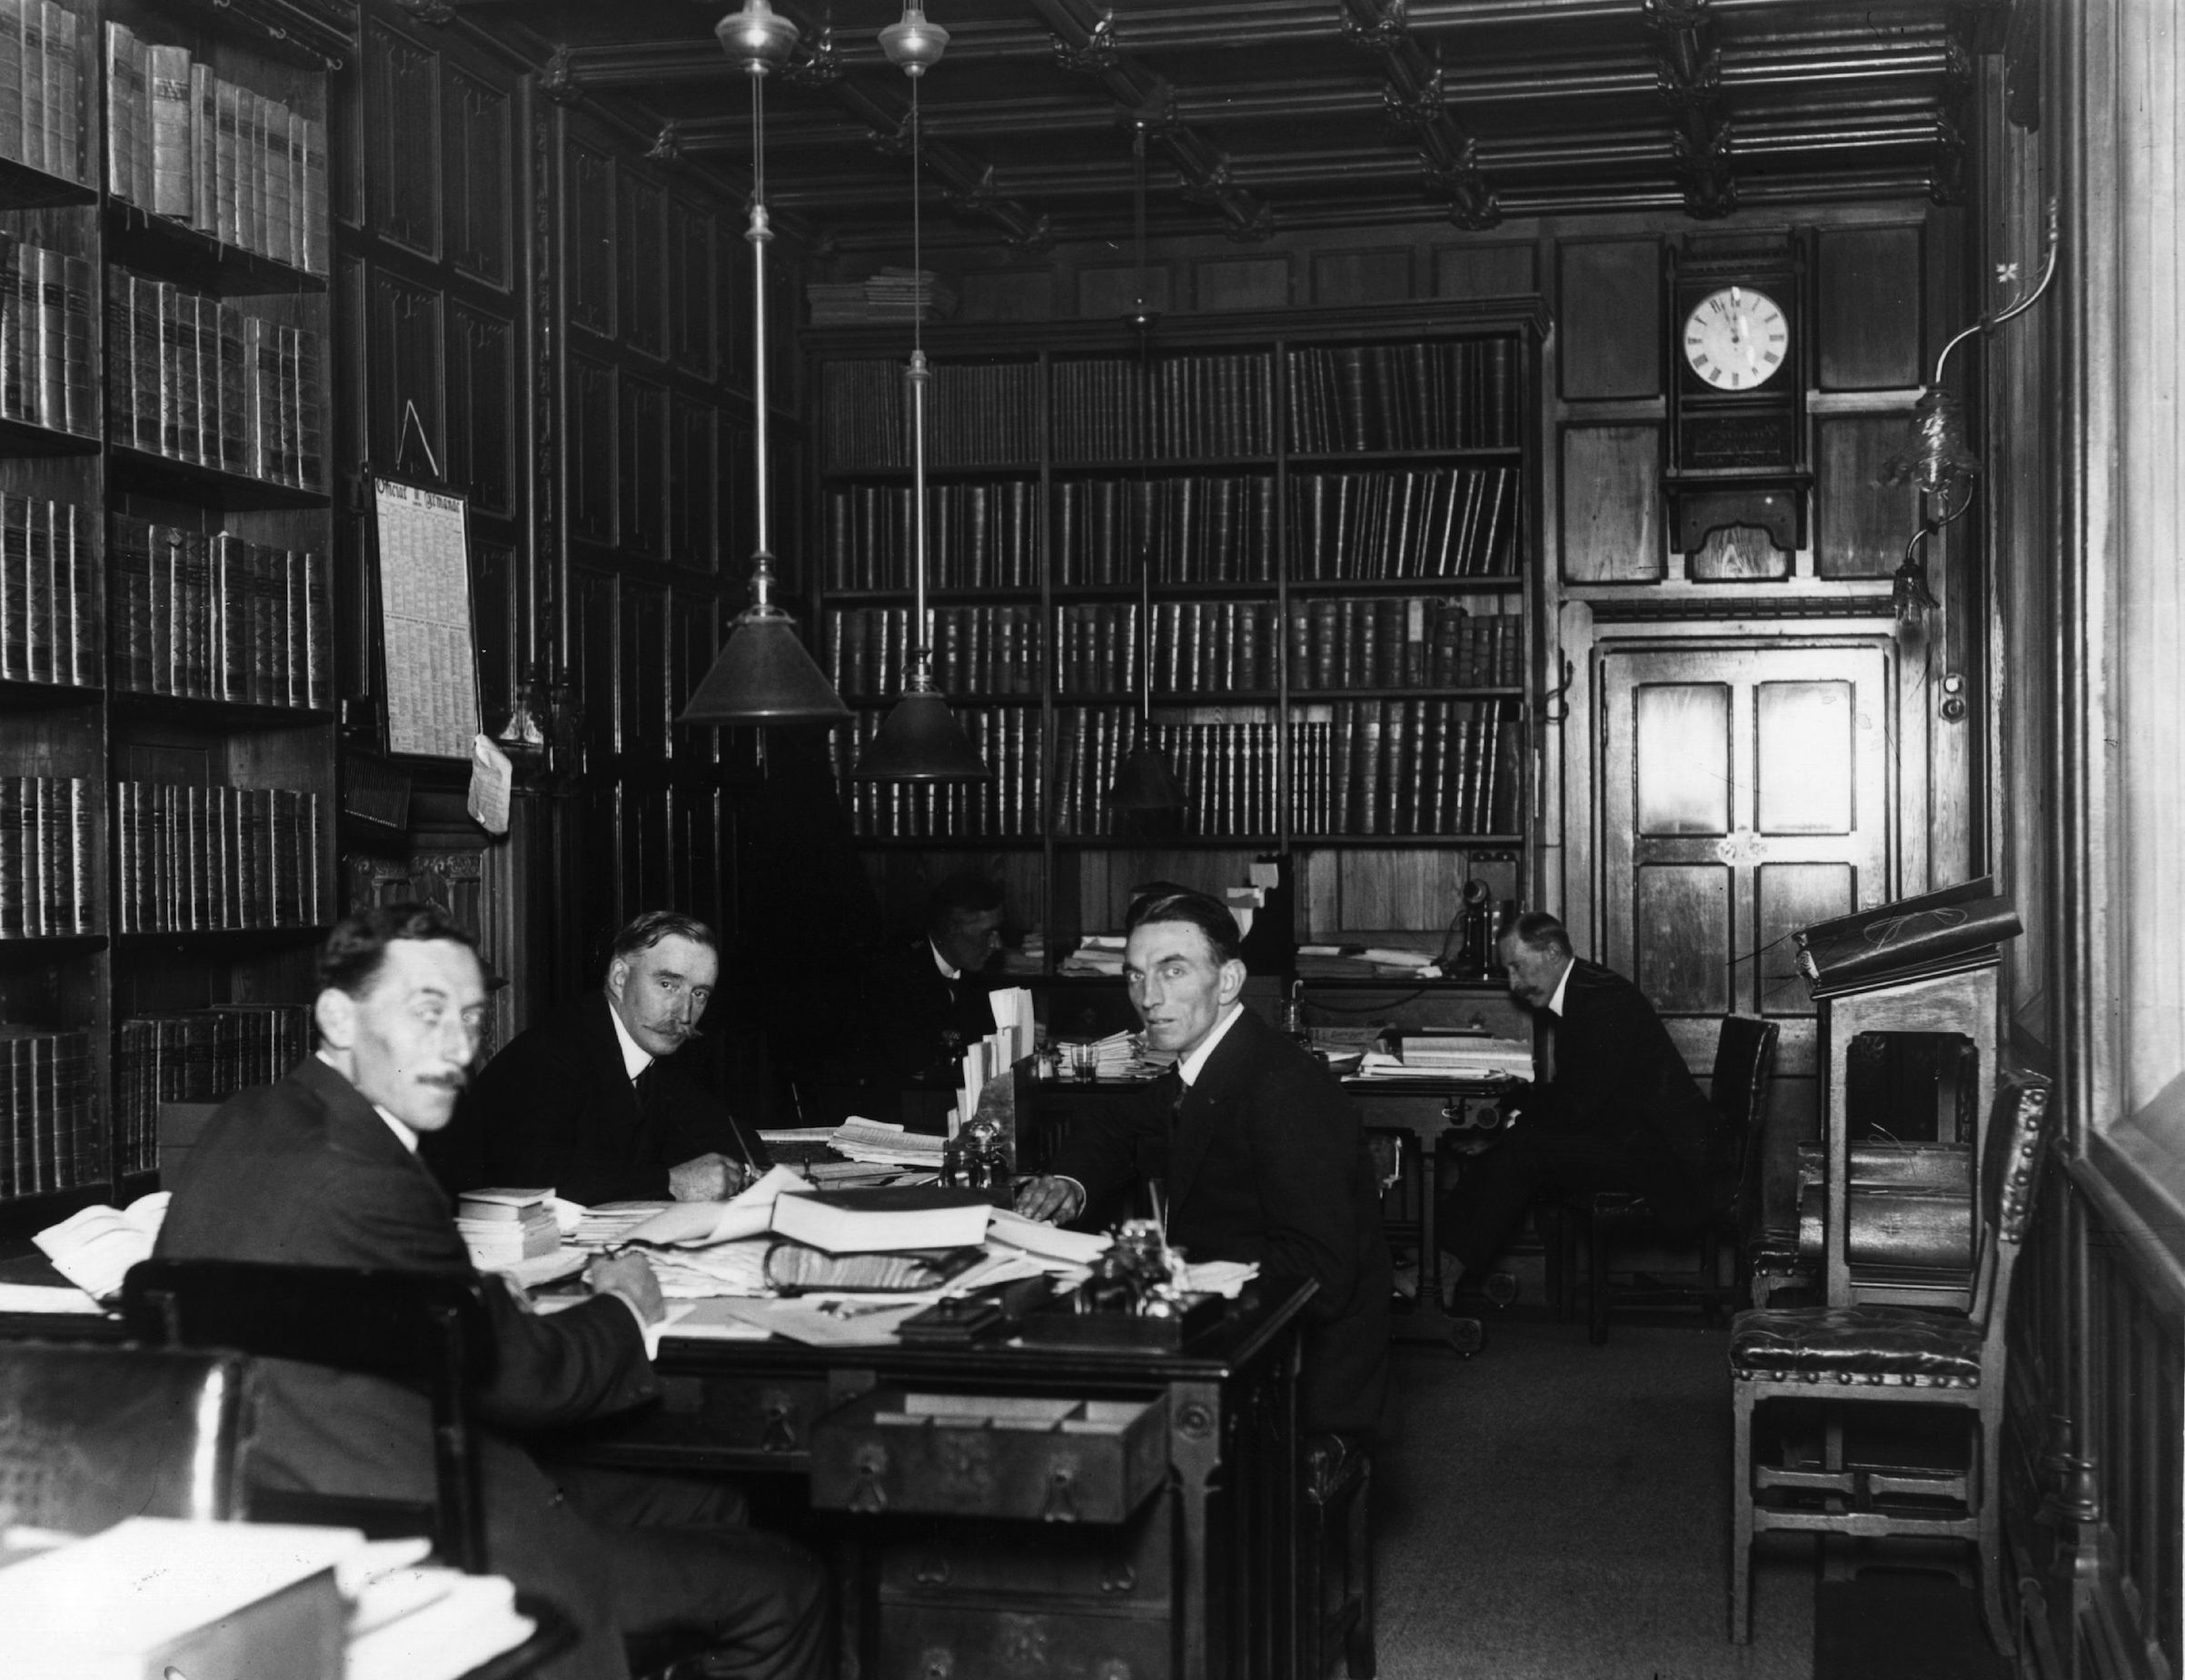 November 1919:  Men at work in the House of Commons library, London.